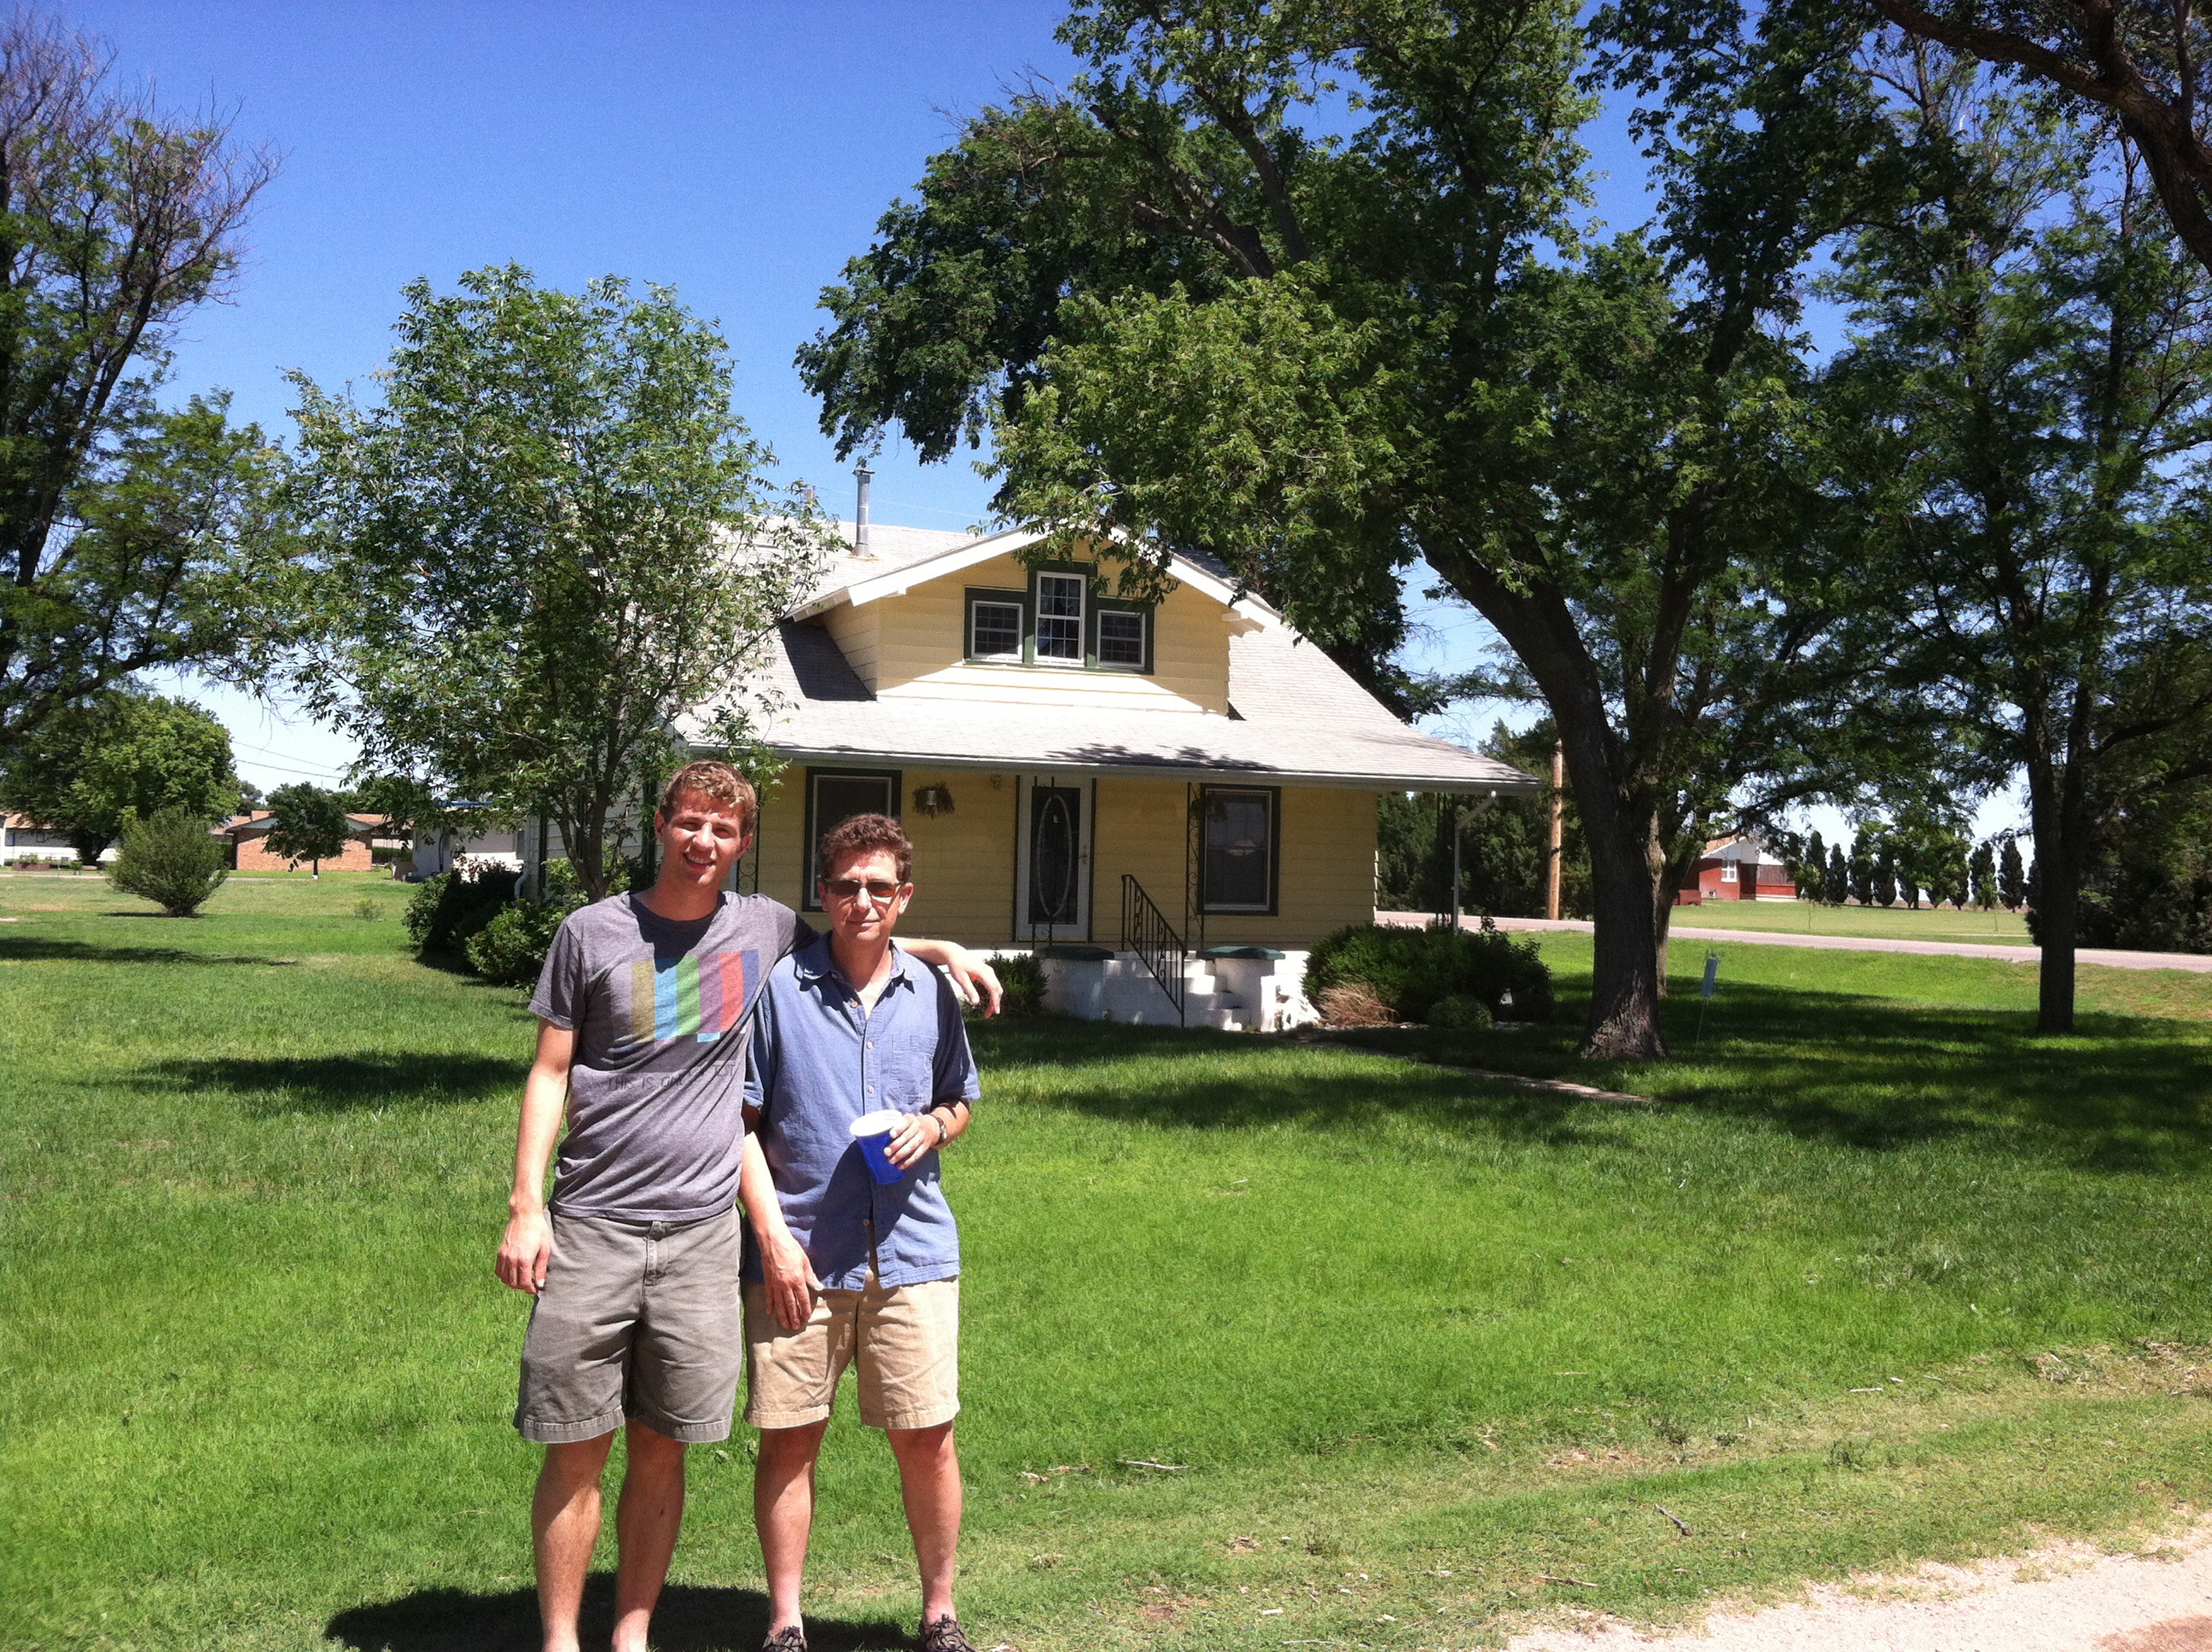 D and n at Doll ancestral home in Wright, Ks